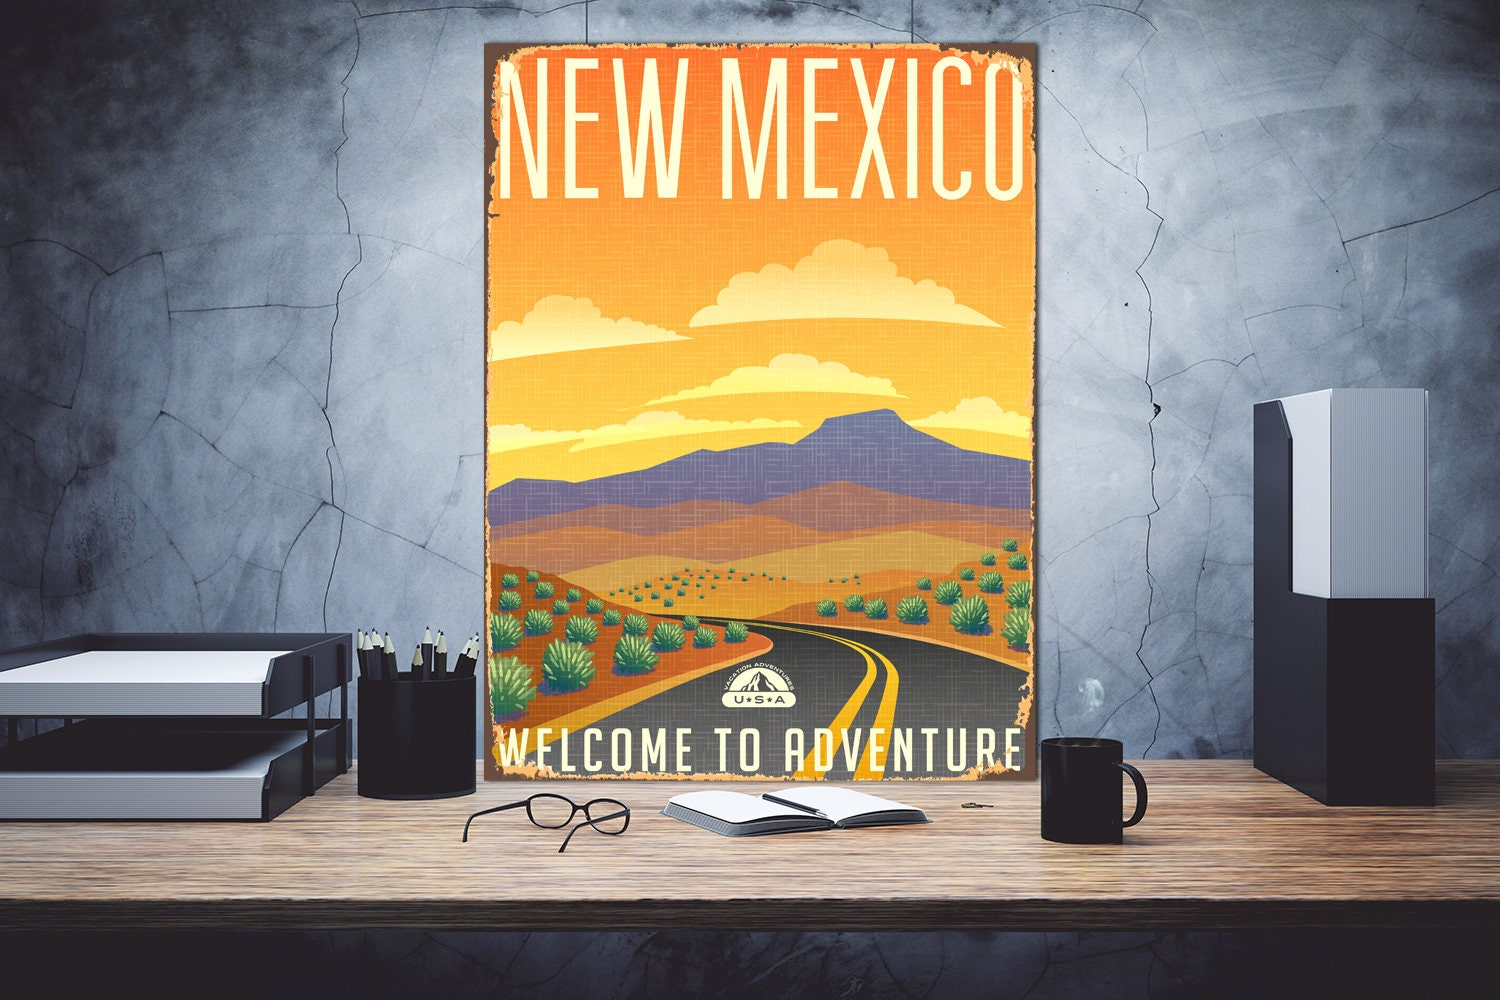 New Mexico Welcome to adventure Metal print art New Mexico | Etsy